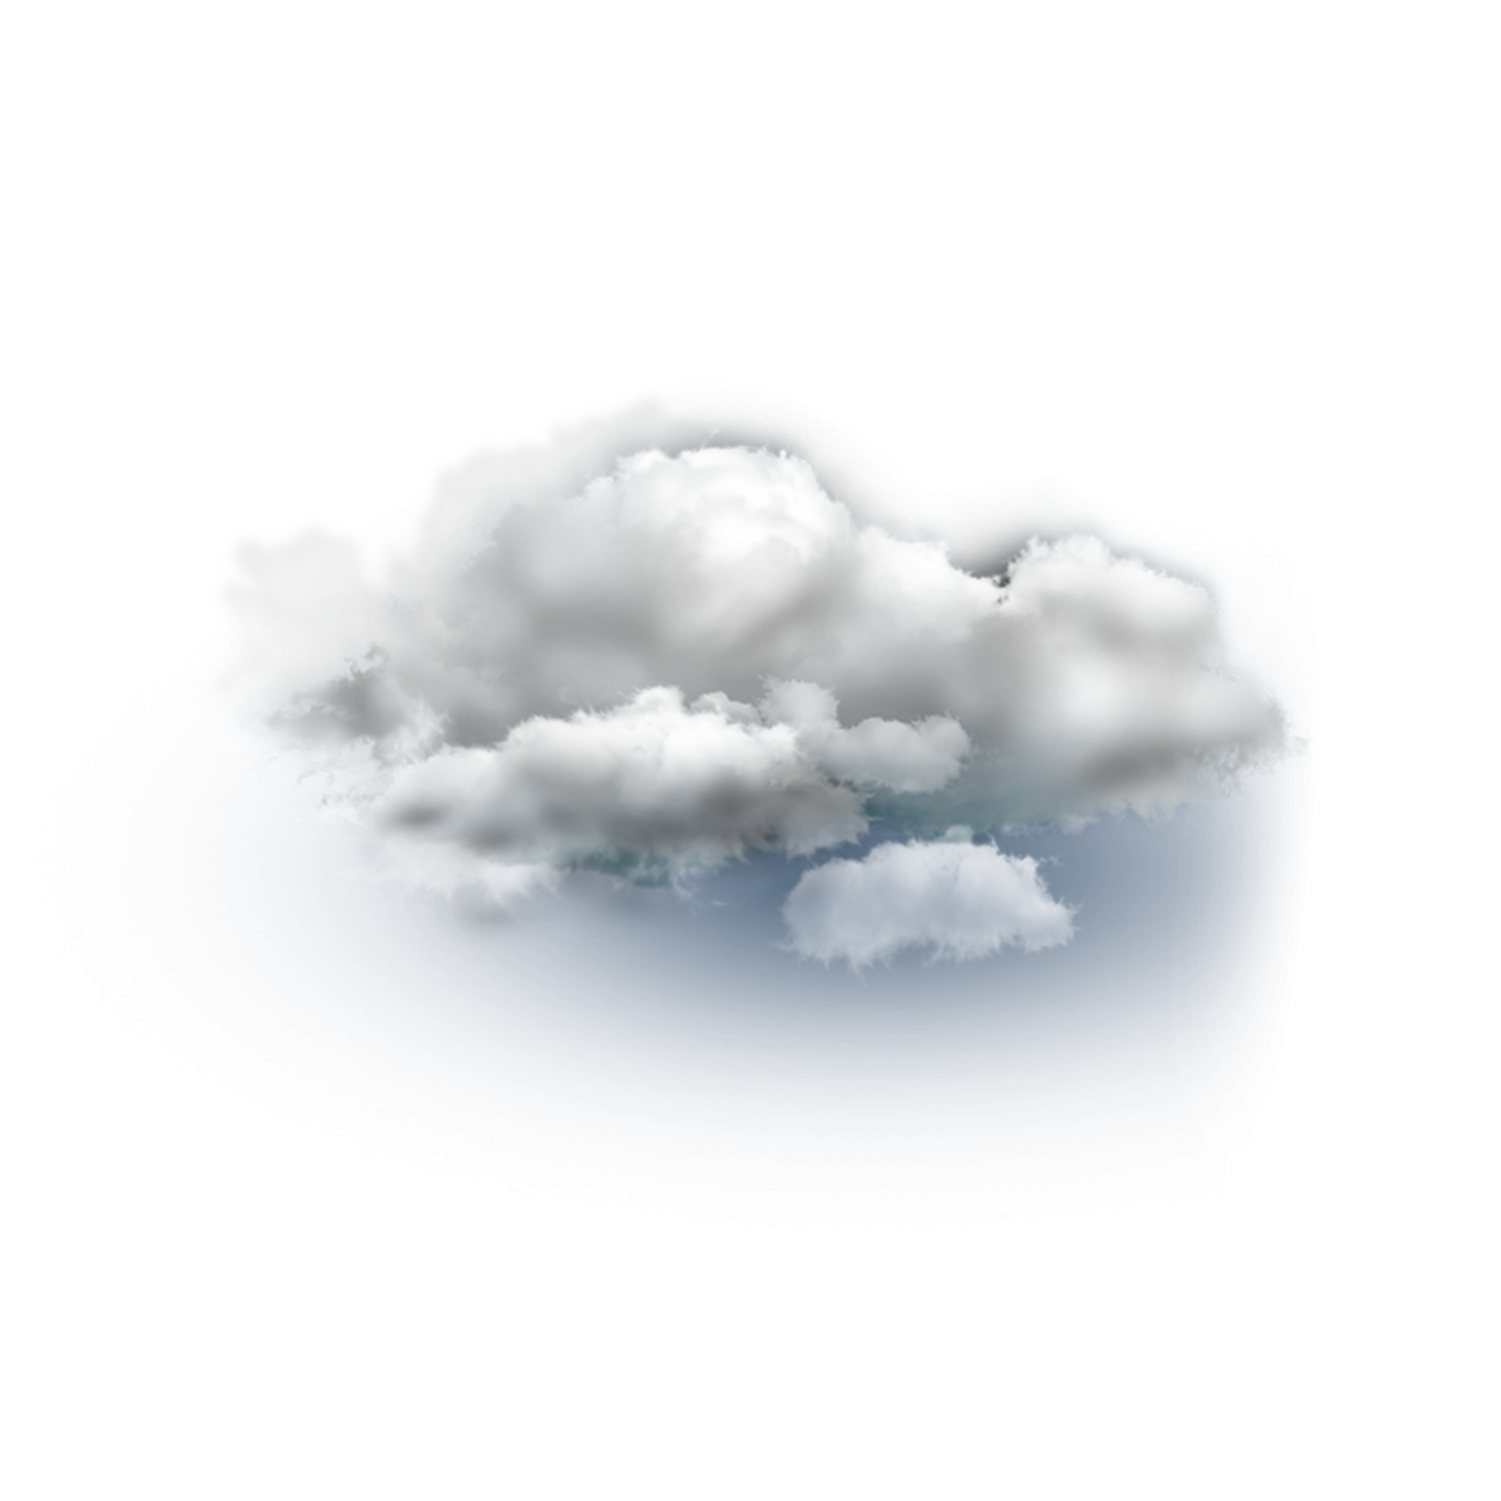 download clouds thick overcast sky cloud free clipart hd hq png image freepngimg download clouds thick overcast sky